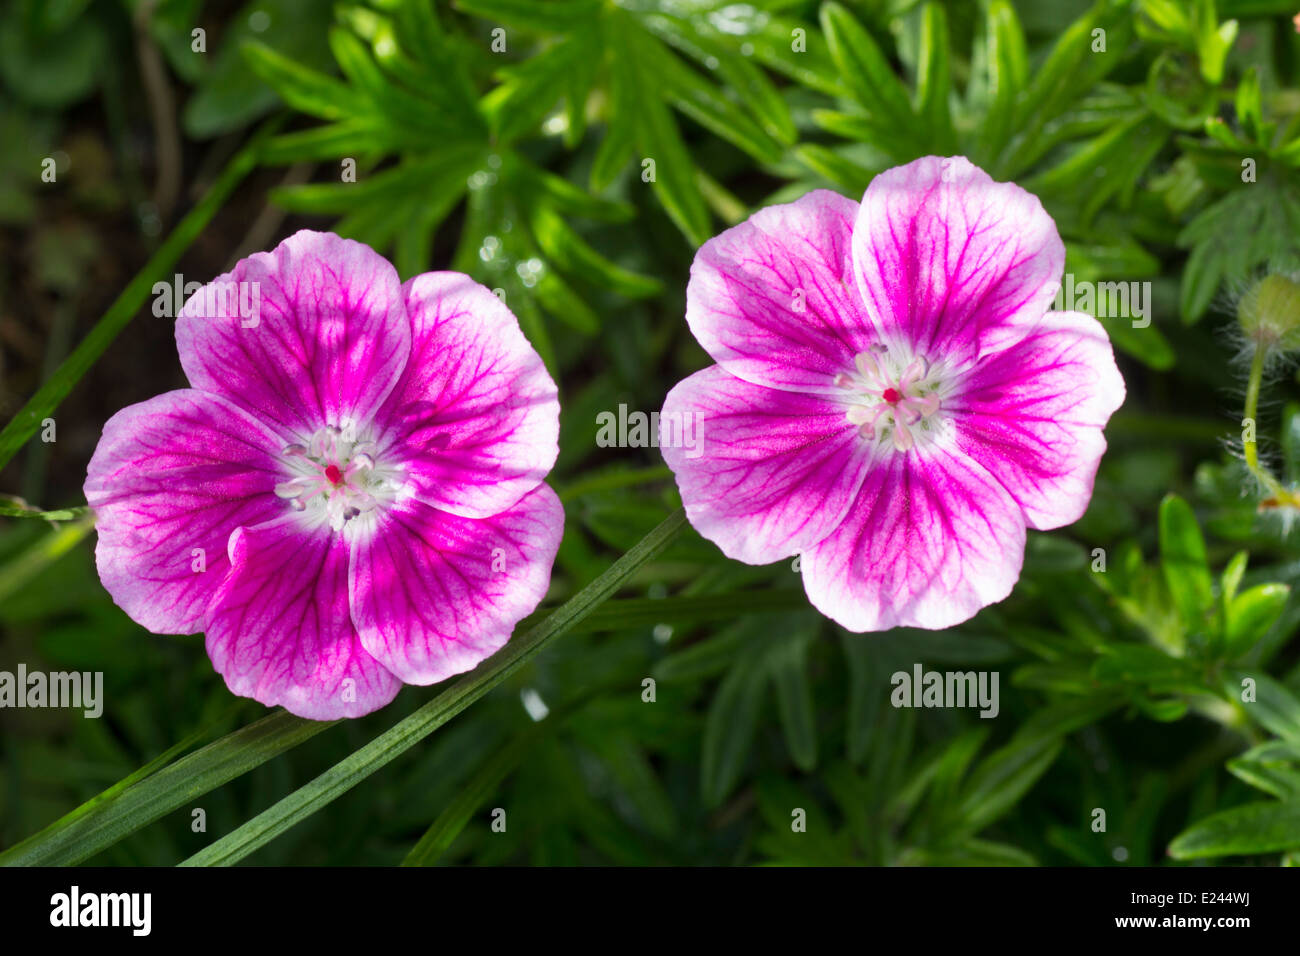 Pink and white flowers of the small hardy geranium geranium stock pink and white flowers of the small hardy geranium geranium sanguineum elke mightylinksfo